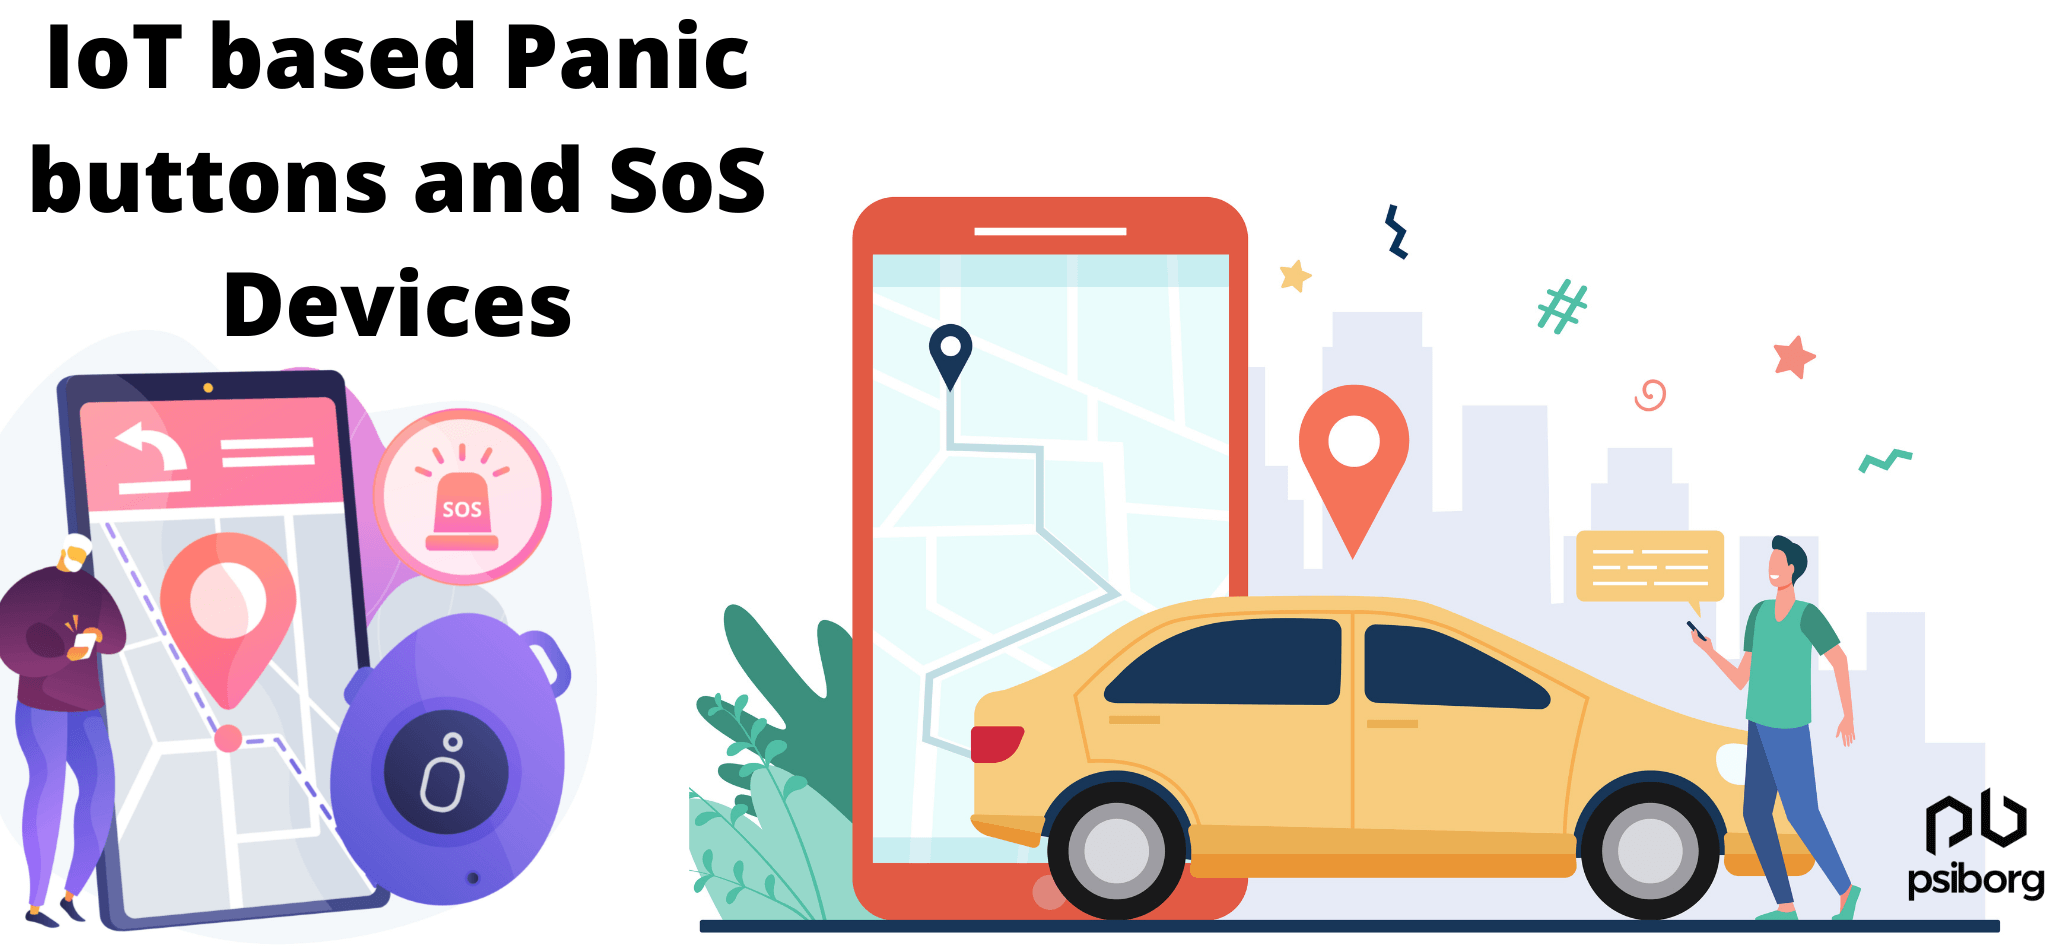 IoT based tracking devices and panic buttons